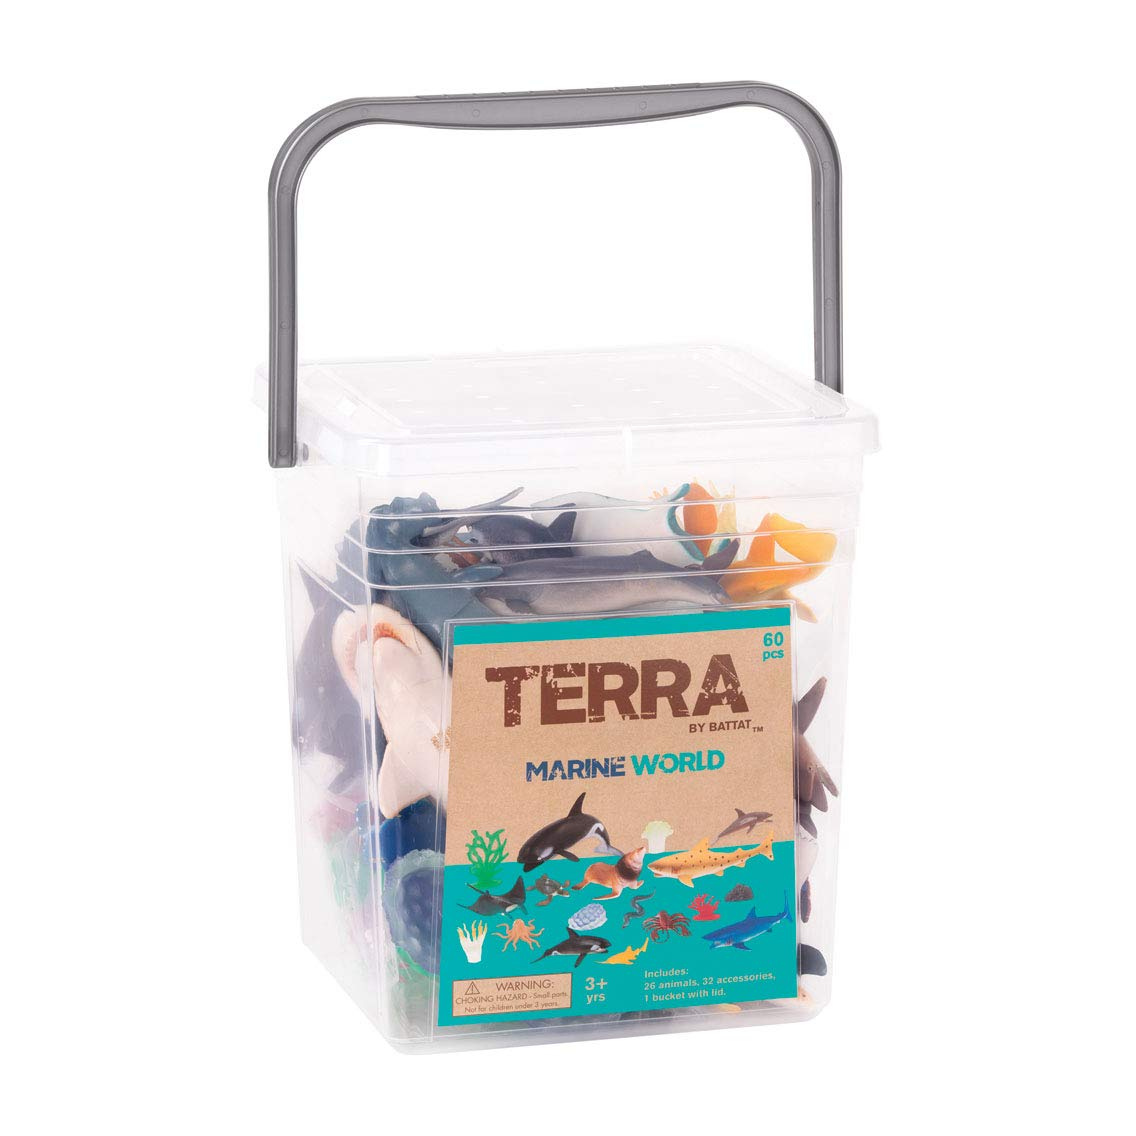 Terra by Battat – Marine World – Assorted Plastic Fish & Sea Creature Miniature Animal Toys for Kids 3+ (60 Pc)